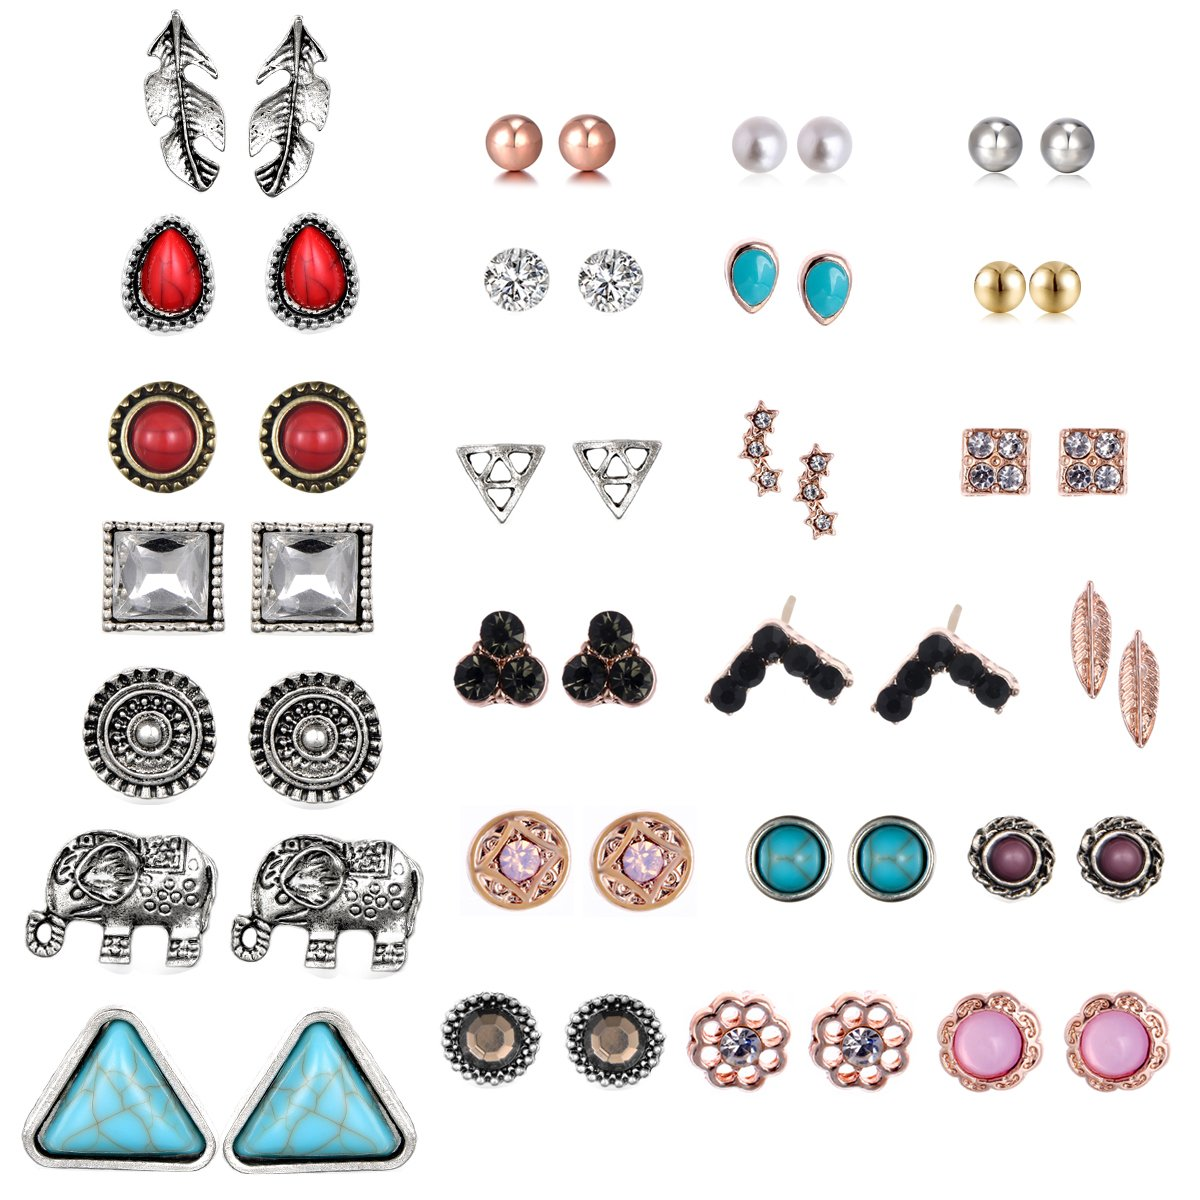 10Pairs/12Pairs Small Cute Simple Post Stud Earrings Gold Tone Set (Mix-25 pairs)